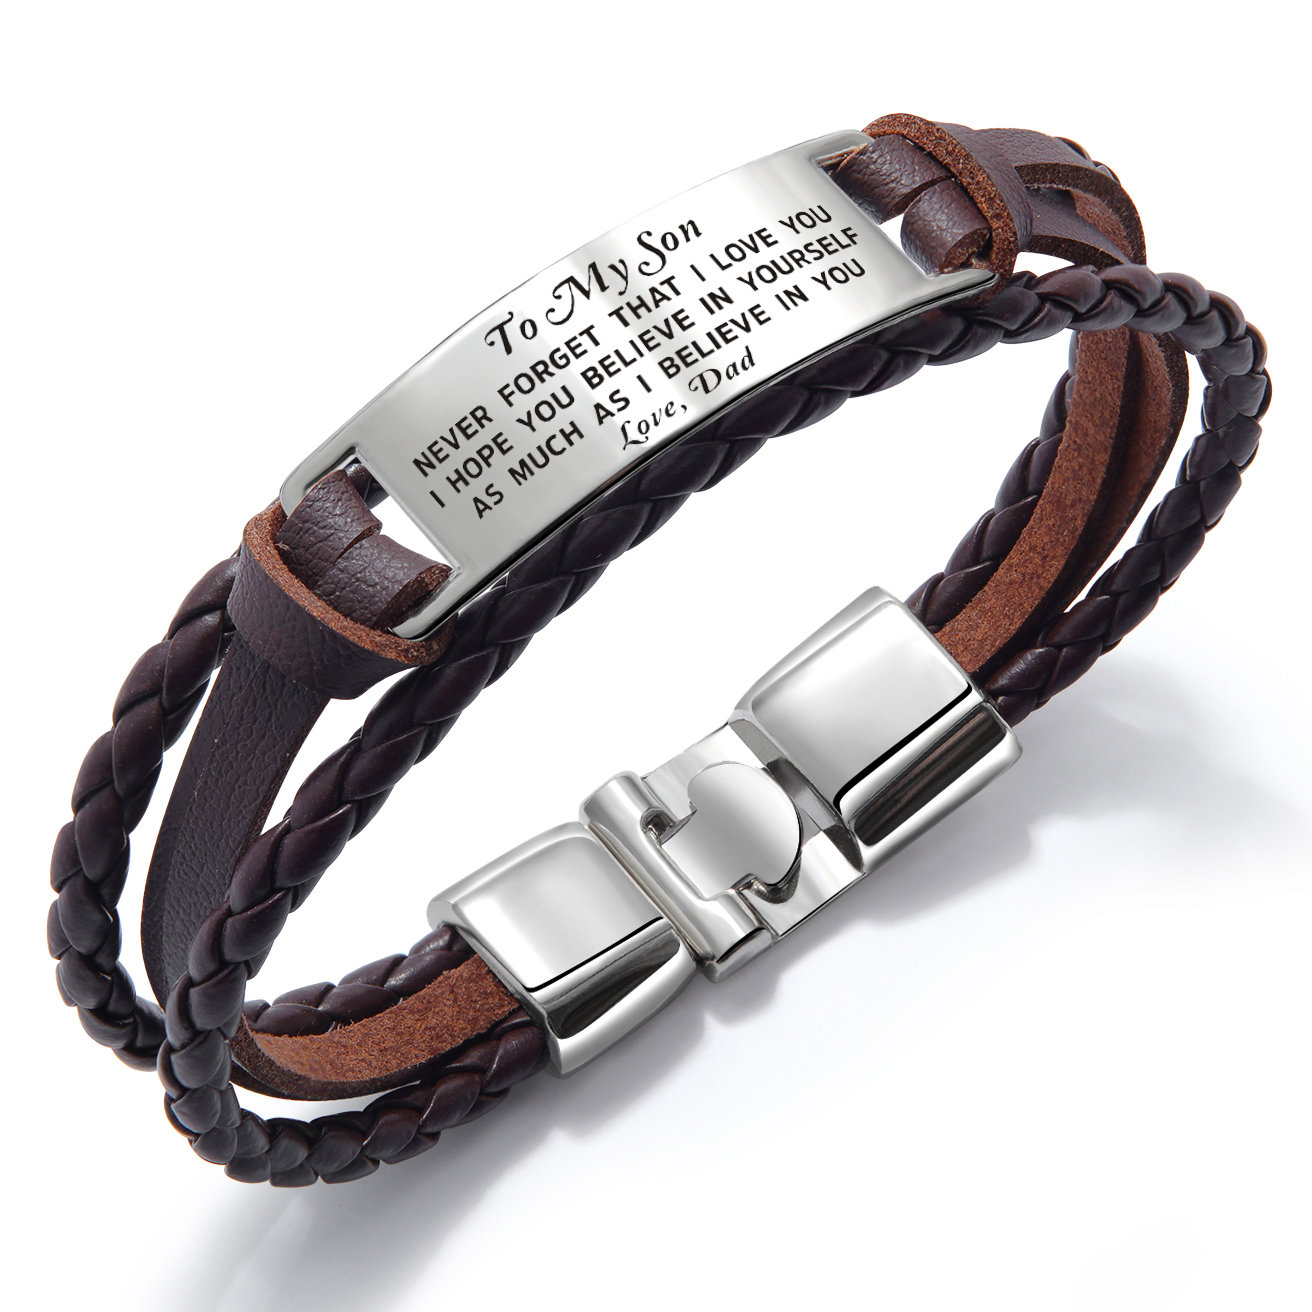 Dad To Son Bracelet Wristband Gift From Dad Men Jewelry Love Son For Christmas Birthday Xmas College Military Graduation Wedding